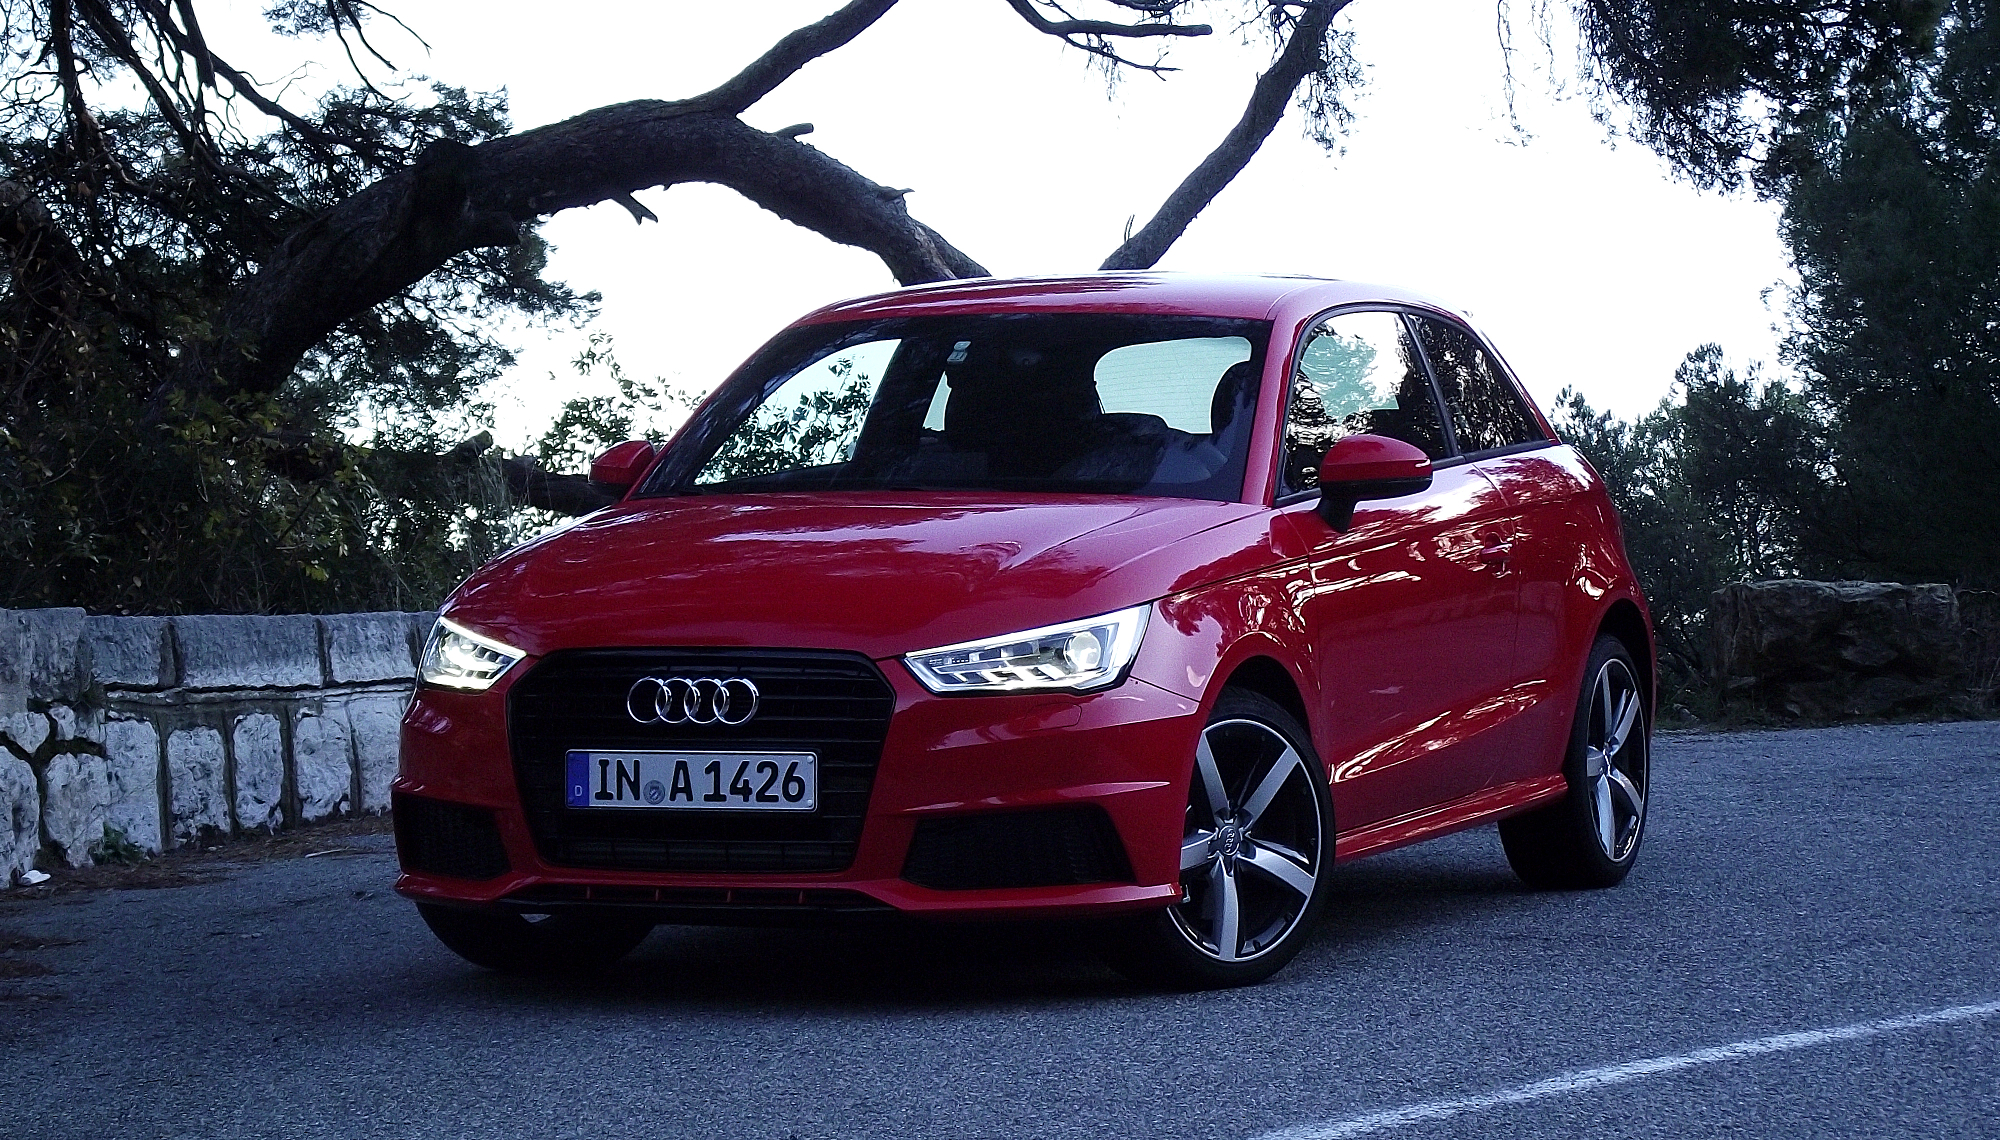 Audi A Coming To Usa New Car Models - Audi a1 usa